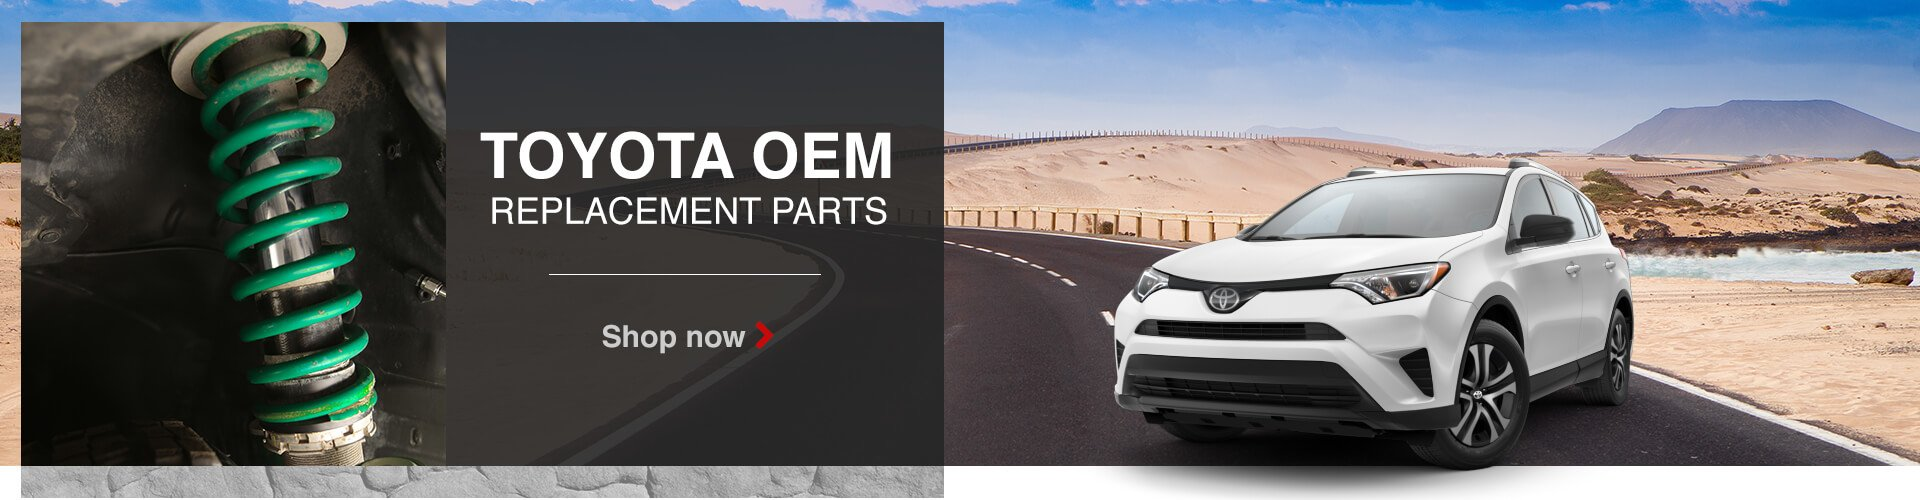 OEM Toyota Replacement Parts